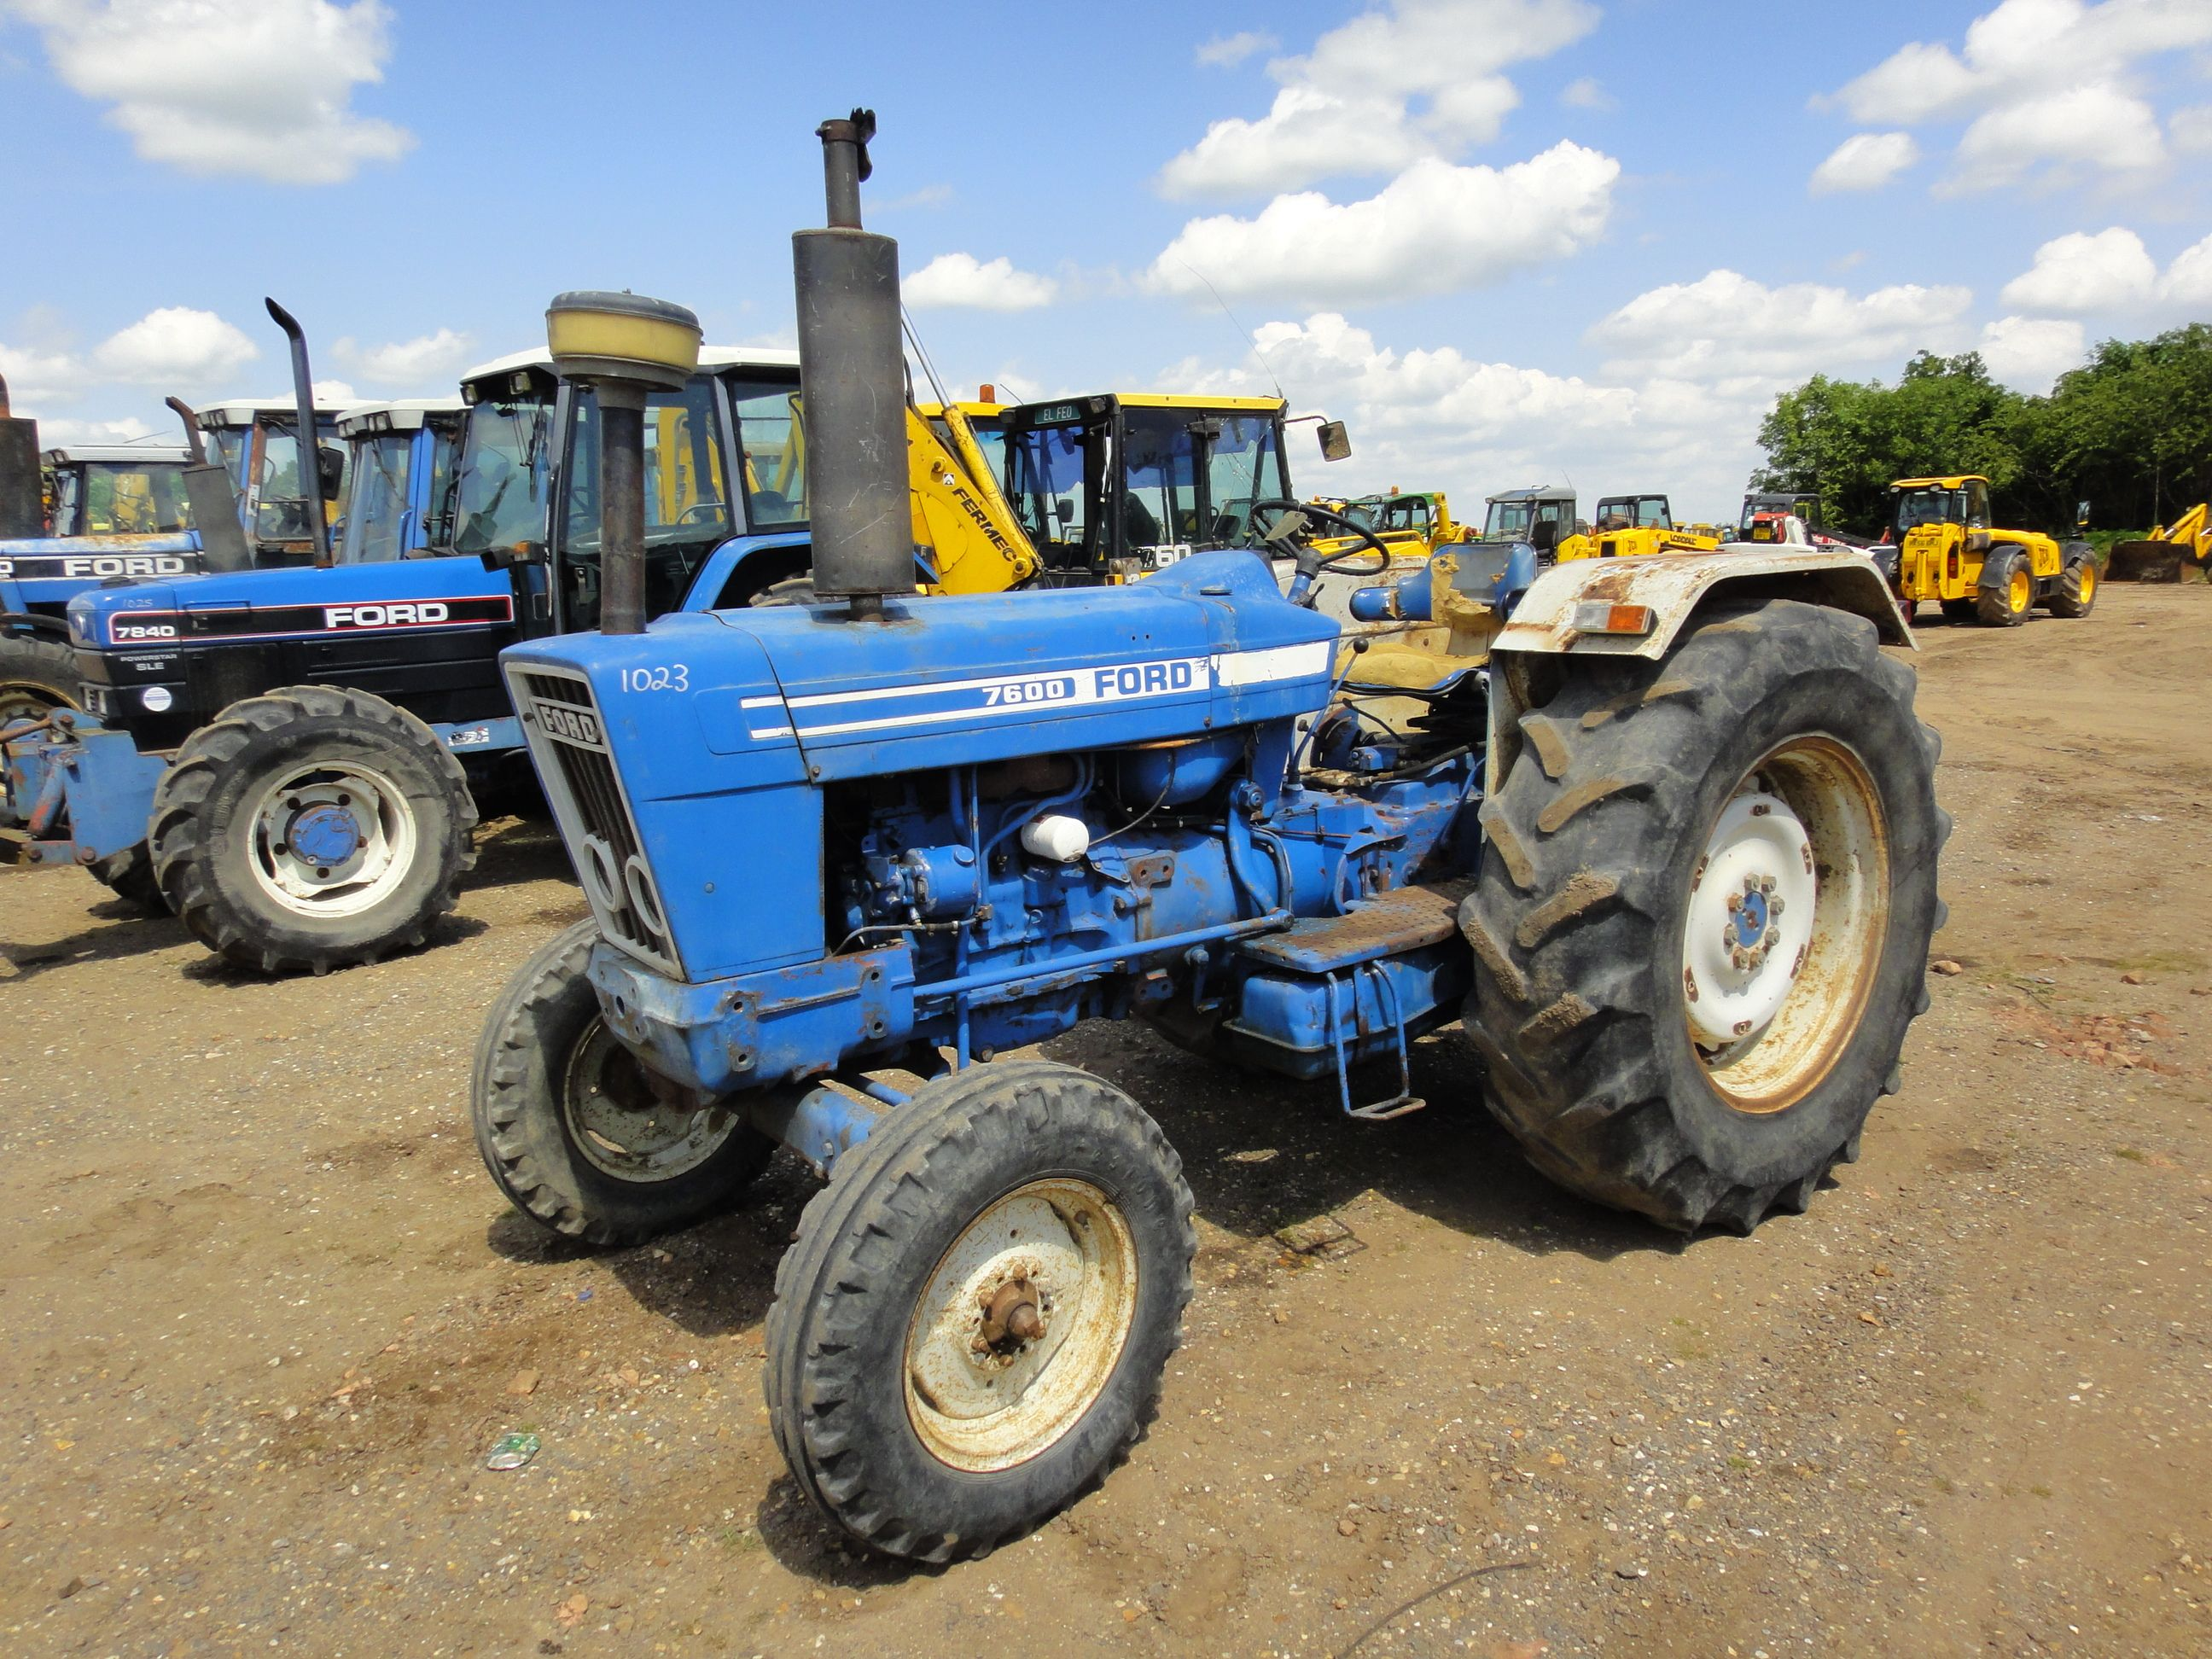 Ford Farm Tractors Lot 1023 Ford 7600 Turbo 4x2 Tractor With Fitted 18 4x34 Rear Tyres Tractors New Holland Tractor Ford Tractors